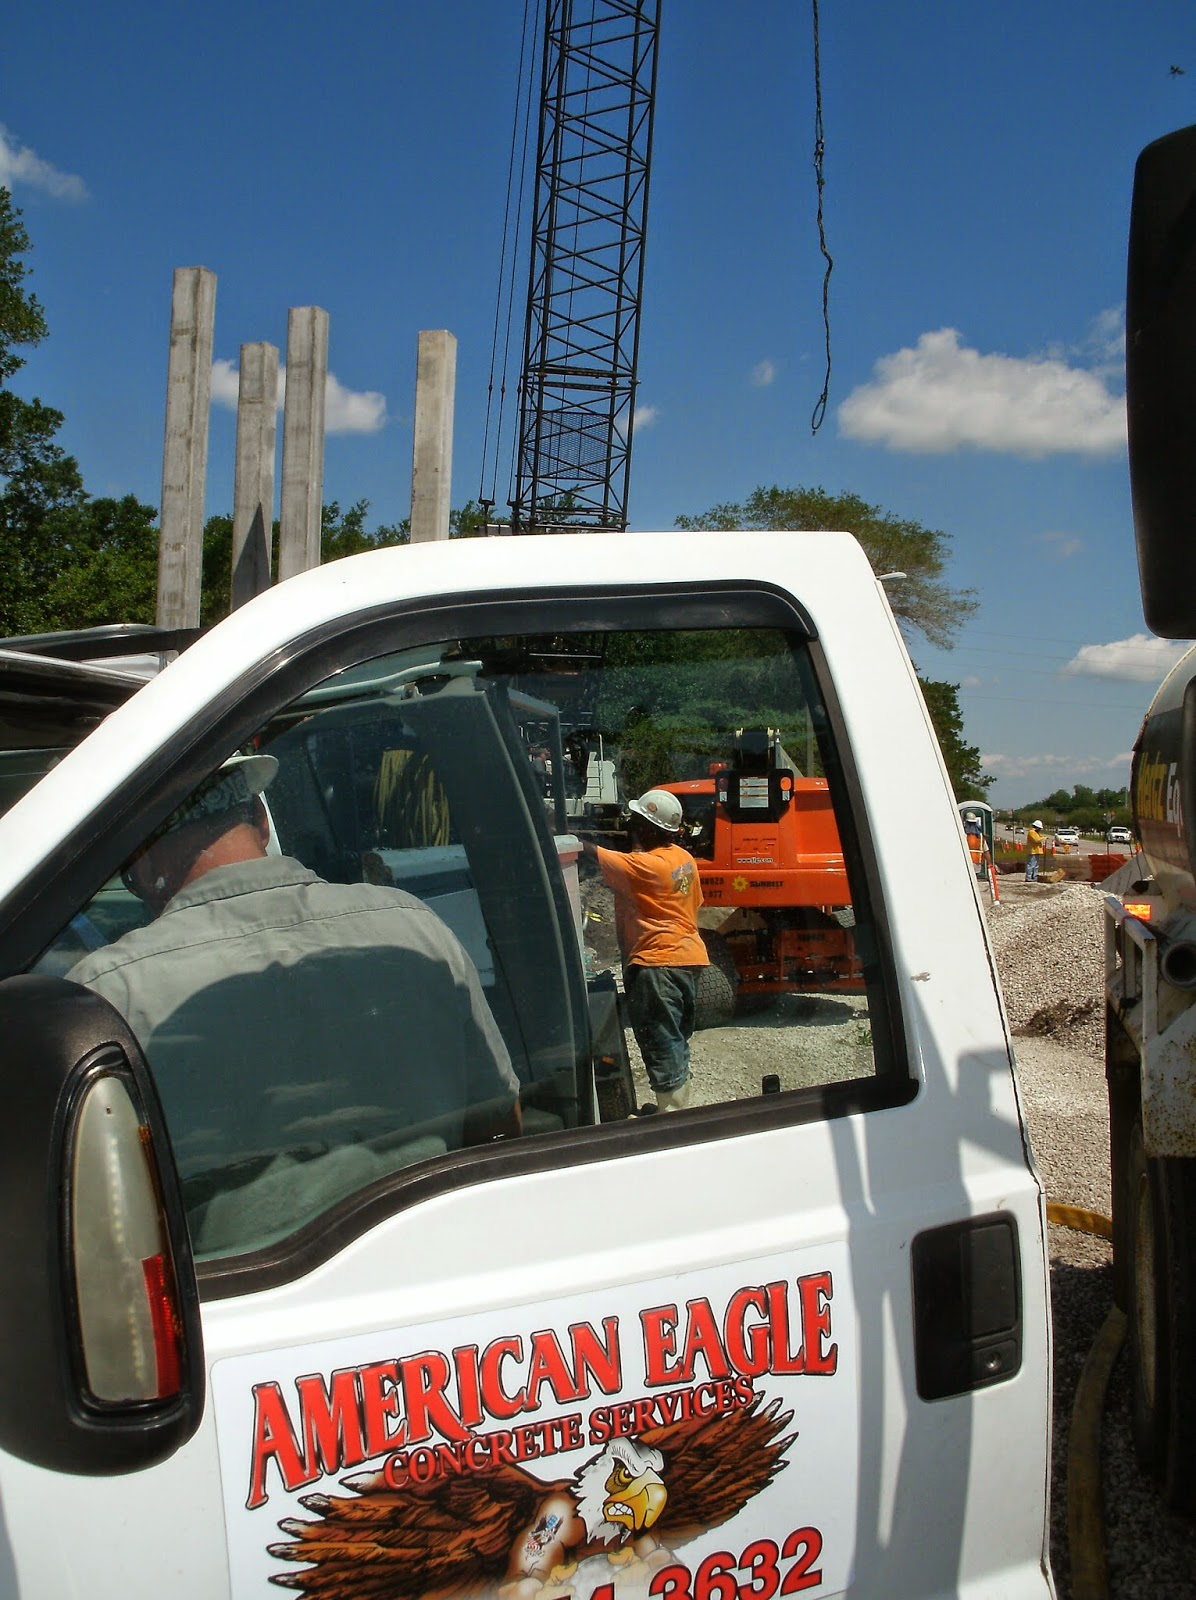 American Eagle Concrete Services, Serving Orlando FL and surrounding.